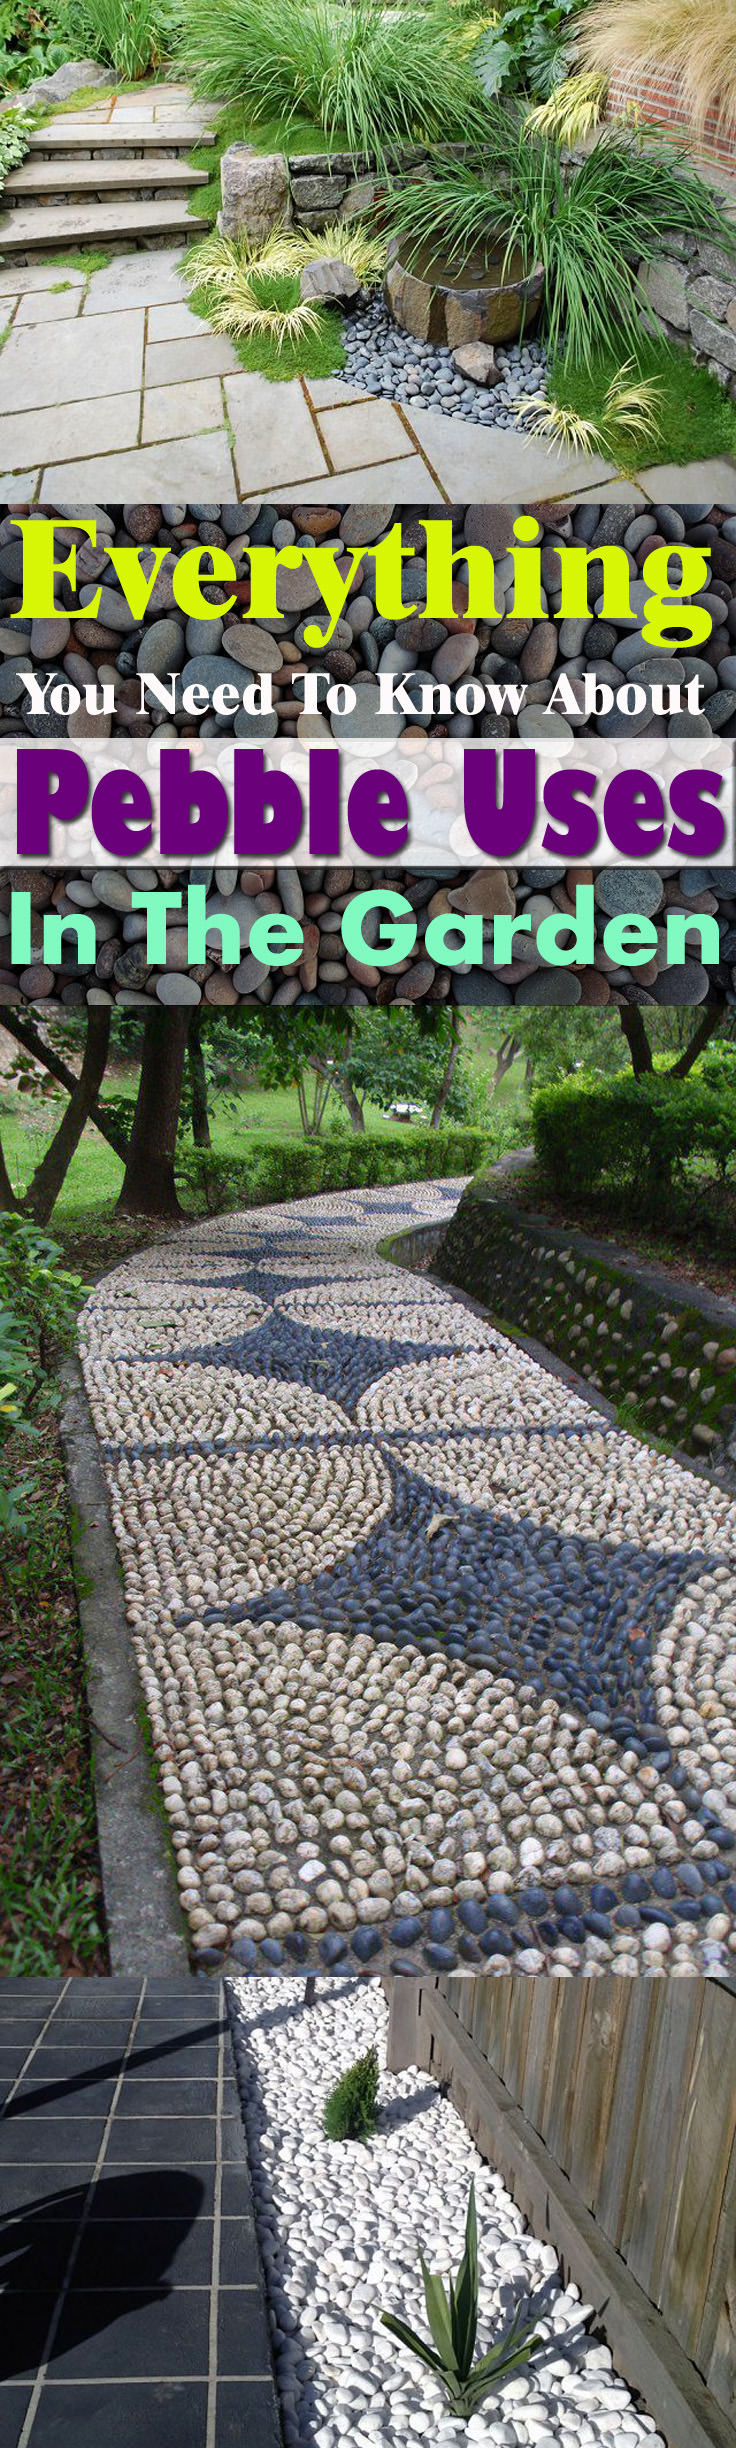 If you're looking for an easy and most amazing way to transform your garden then use garden Pebbles!